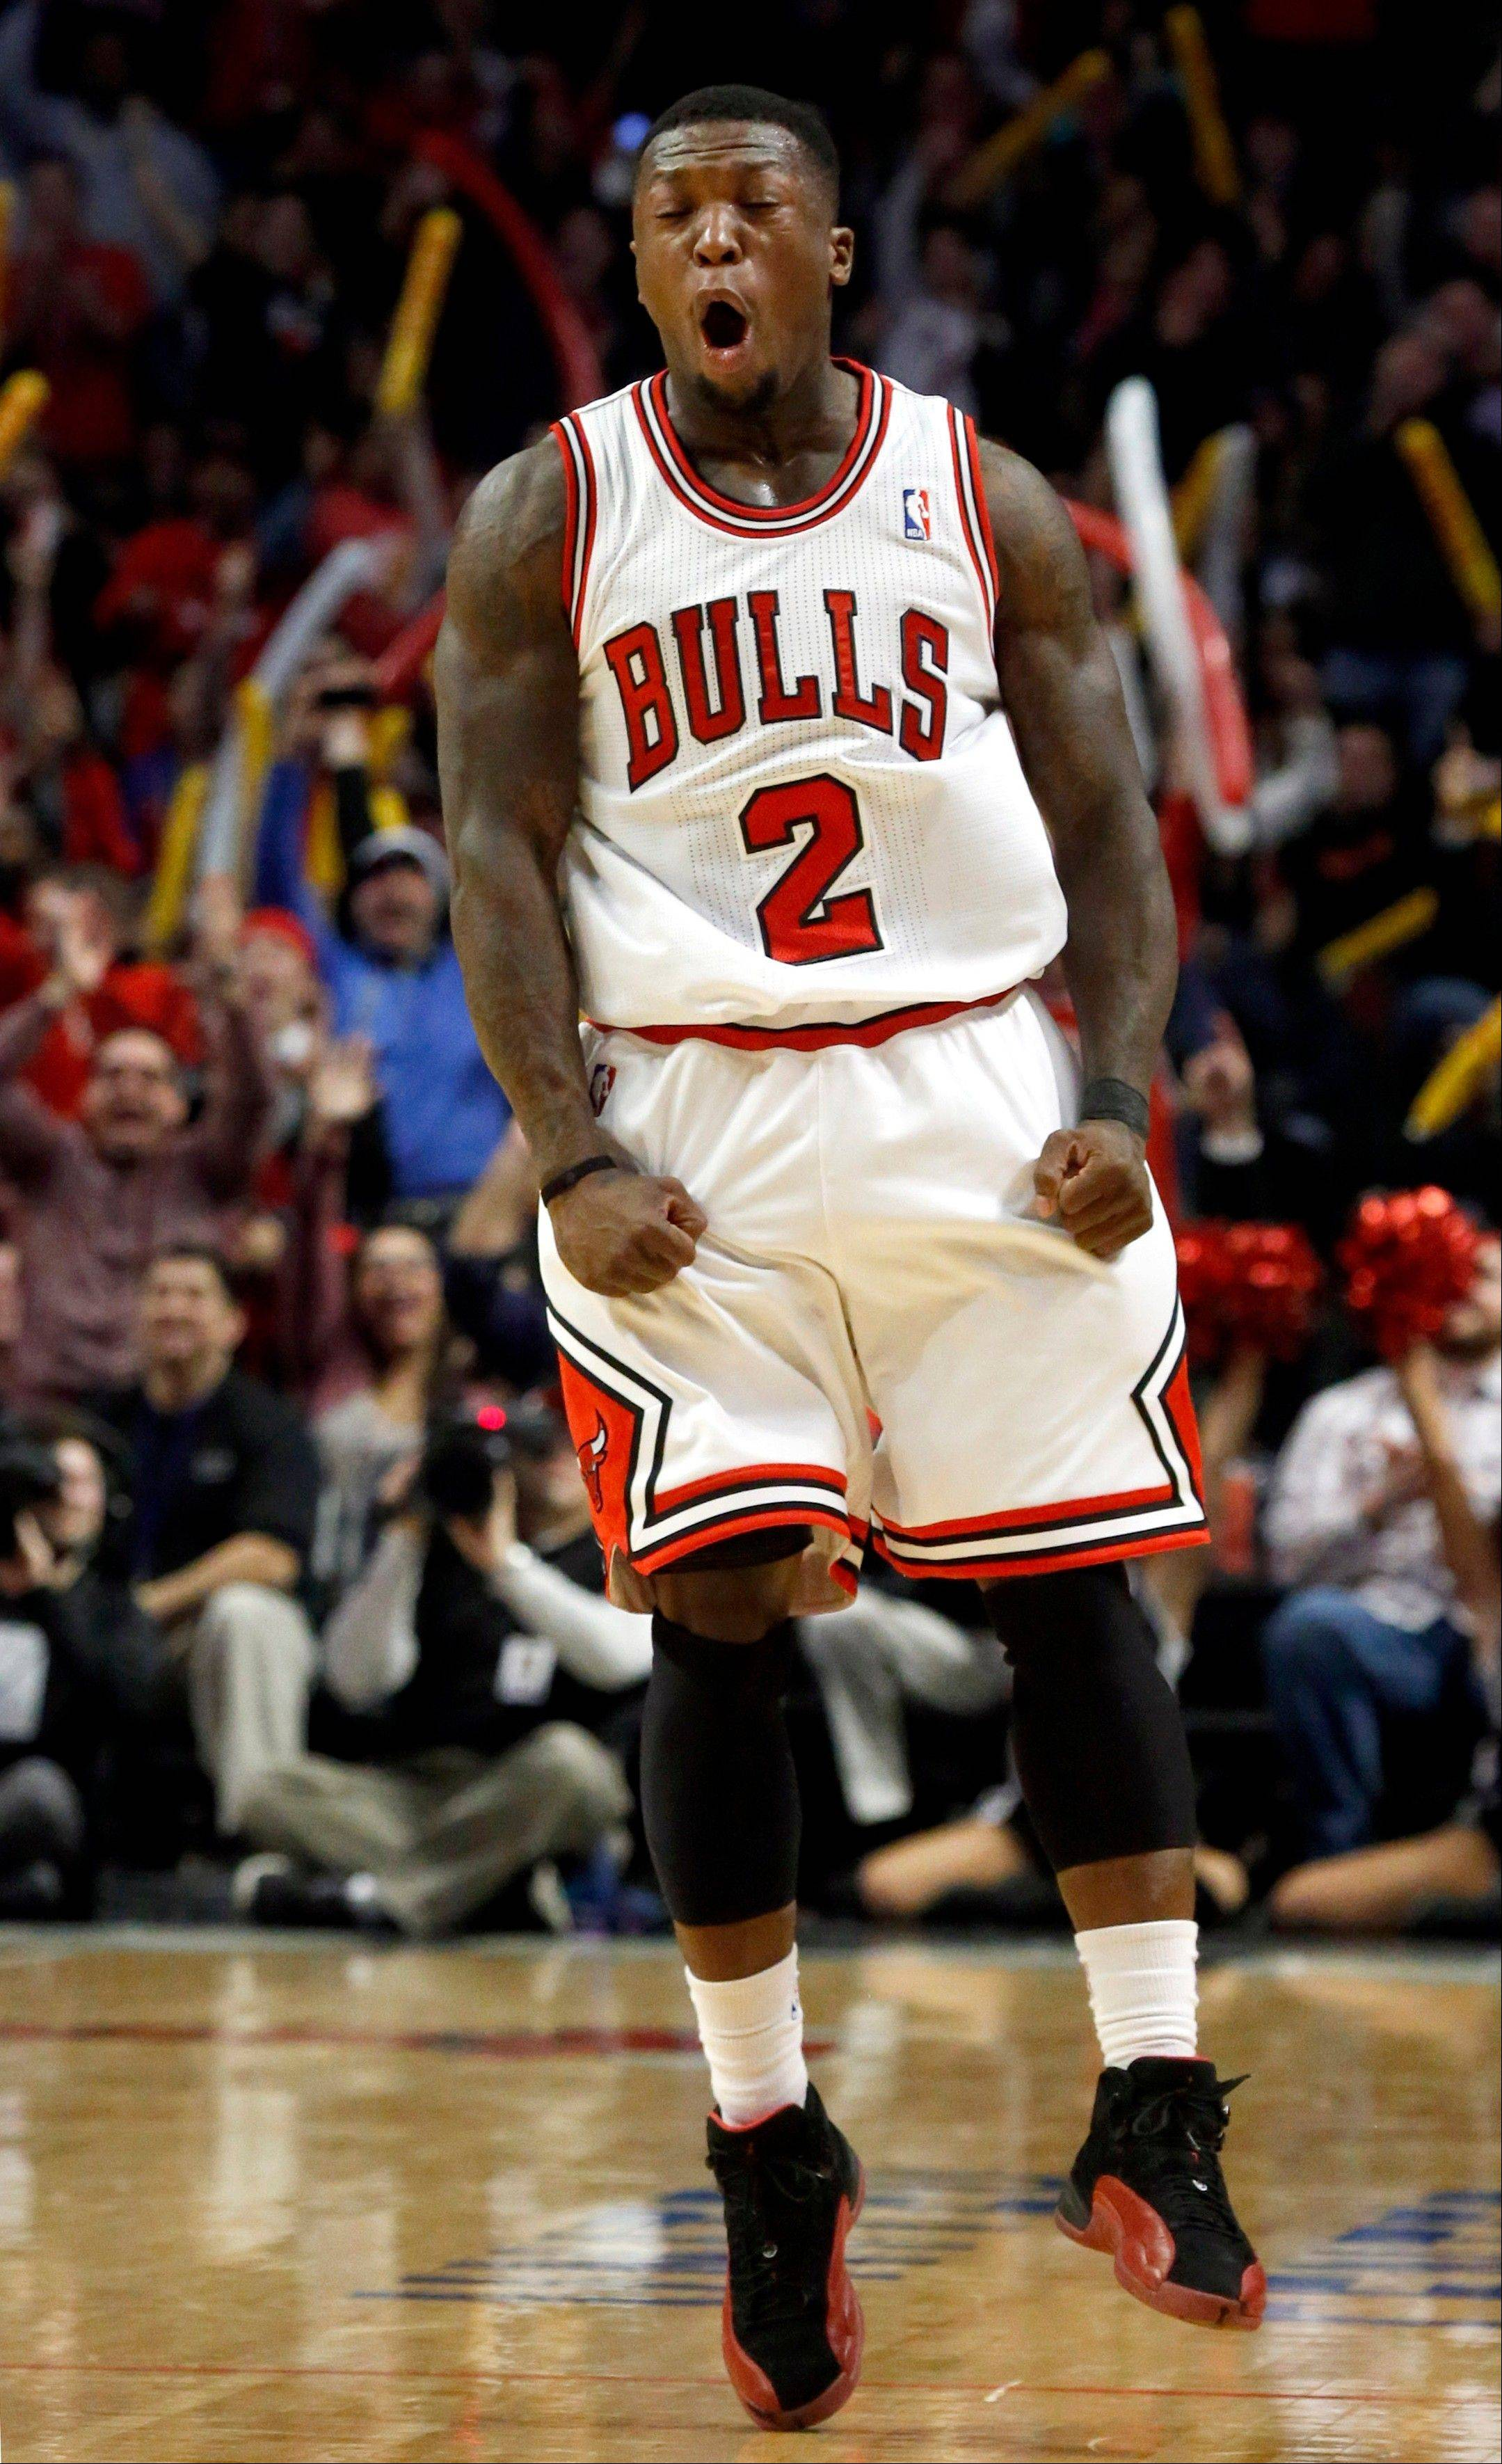 Bulls' Robinson relishes role of sparkplug